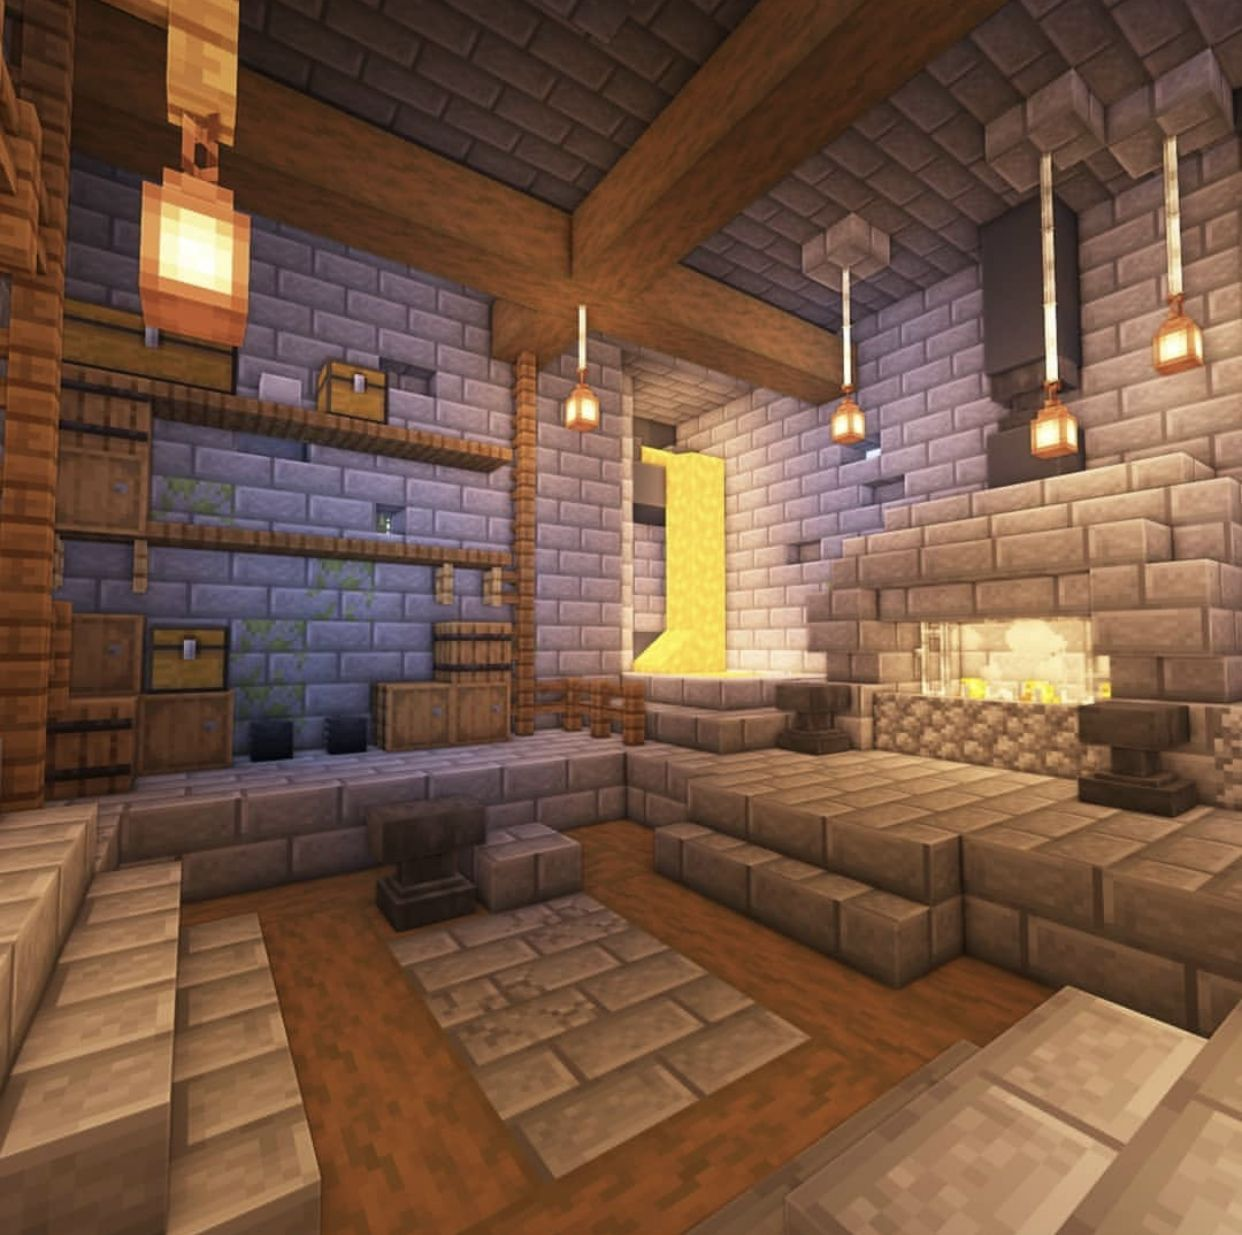 Pin By Aron On Minecraft Inspirations Minecraft Designs